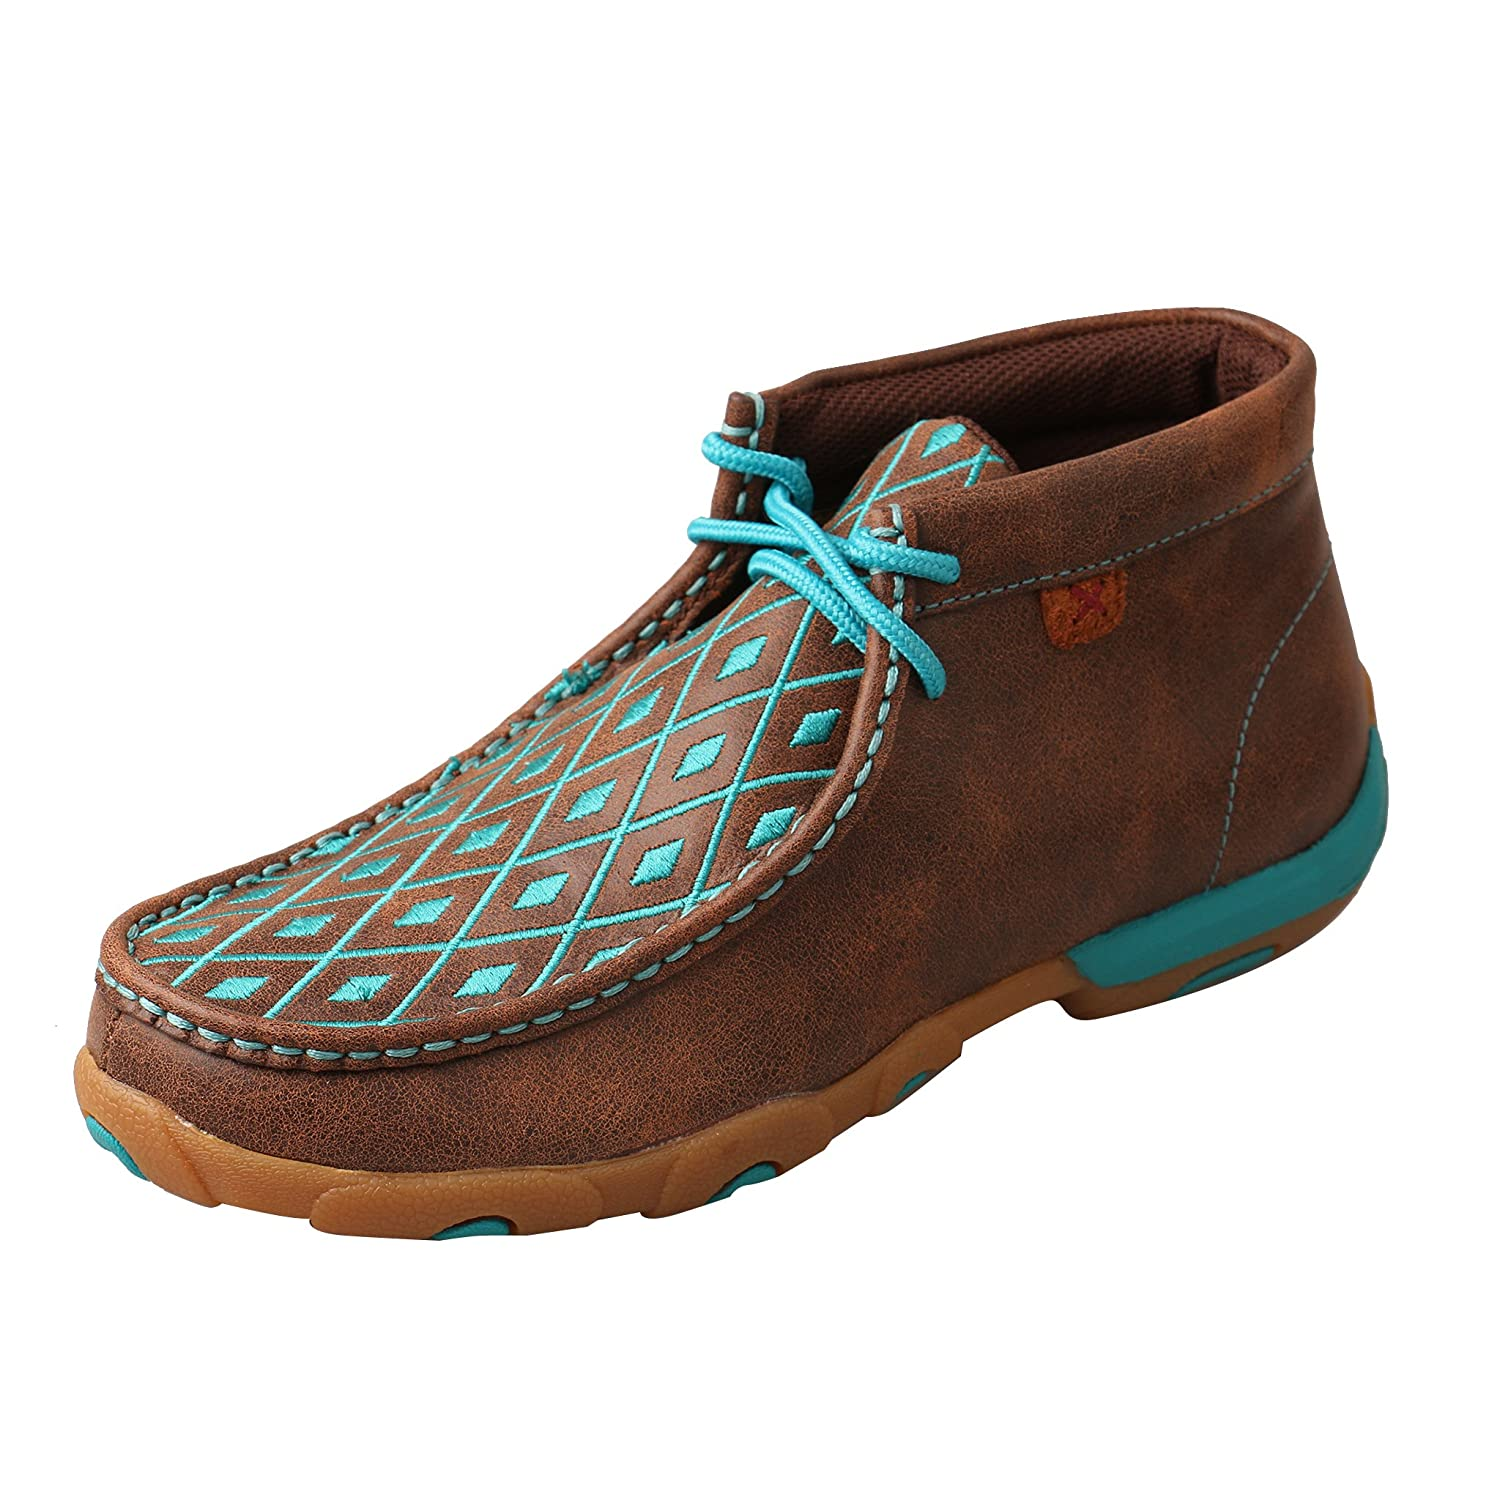 Twisted X Women's Leather Lace-up Rubber Sole Driving Moccasins - Brown/Turquoise B075K9F3KD 6.5 B(M) US|Brown/Turquoise